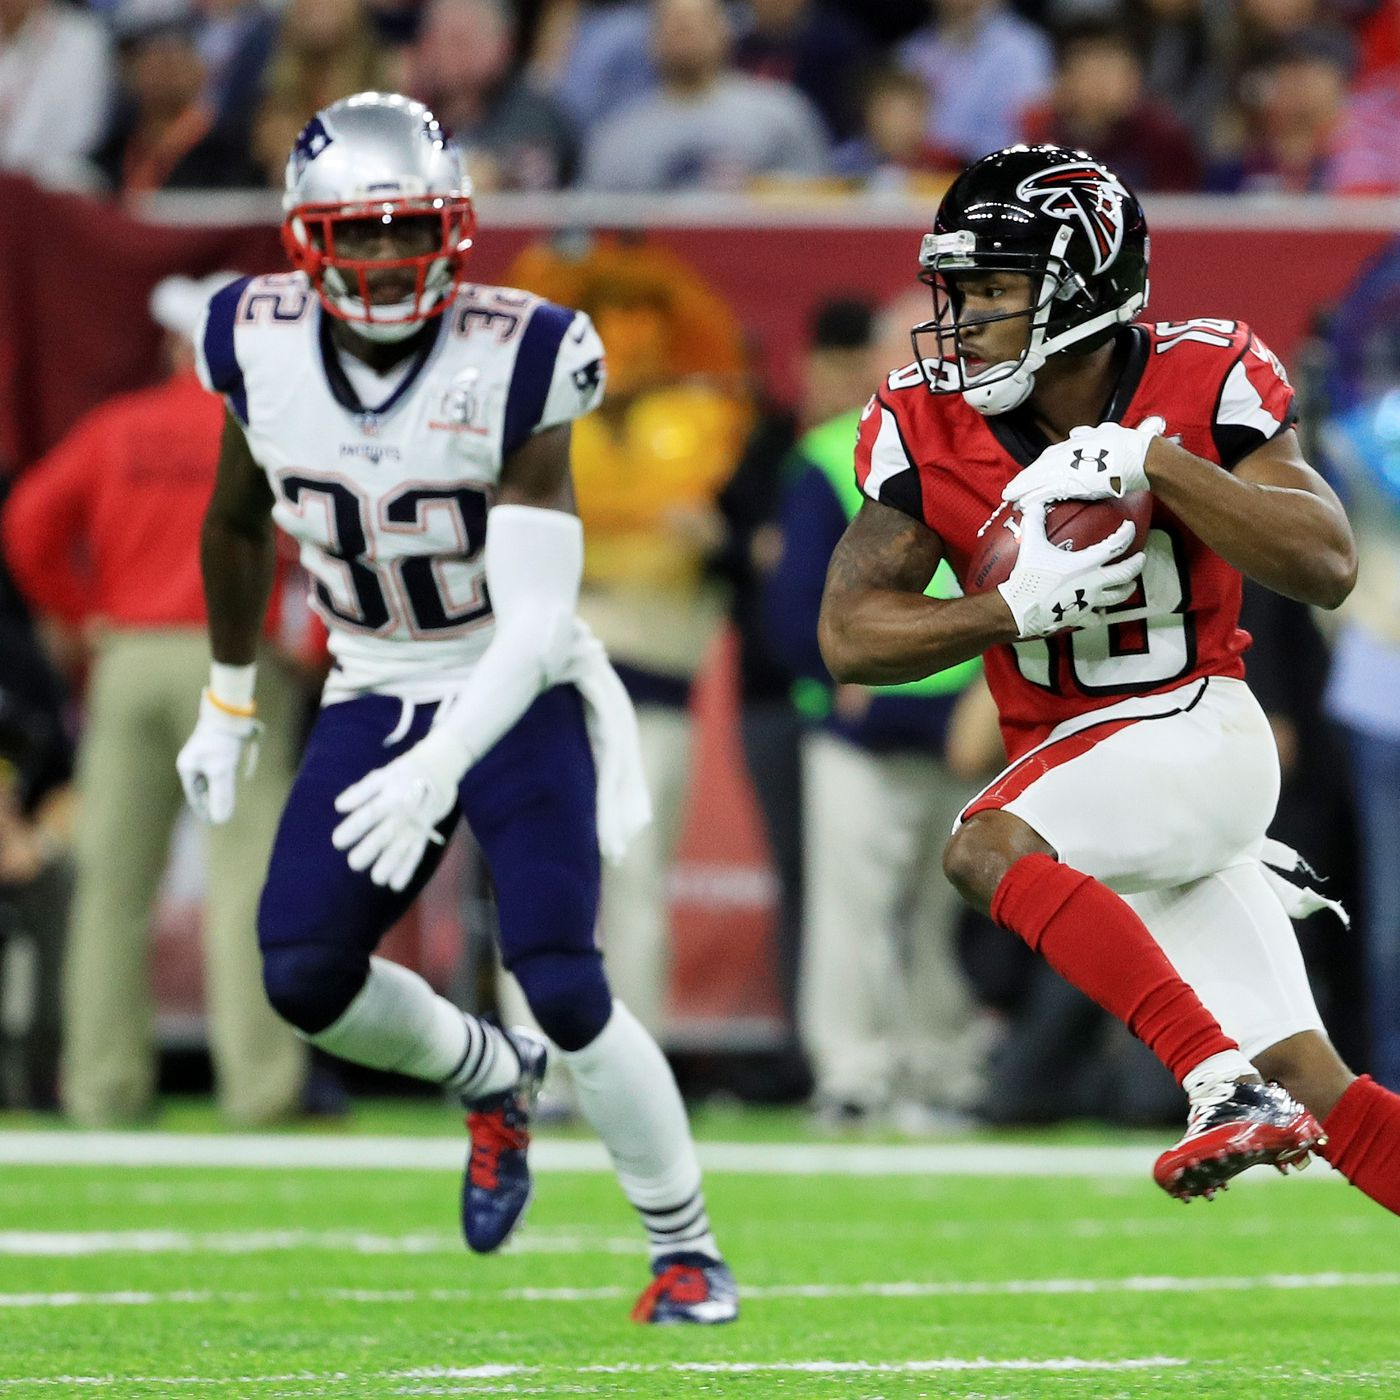 17 years of Patriots: Analyzing safeties under Bill Belichick - Pats Pulpit